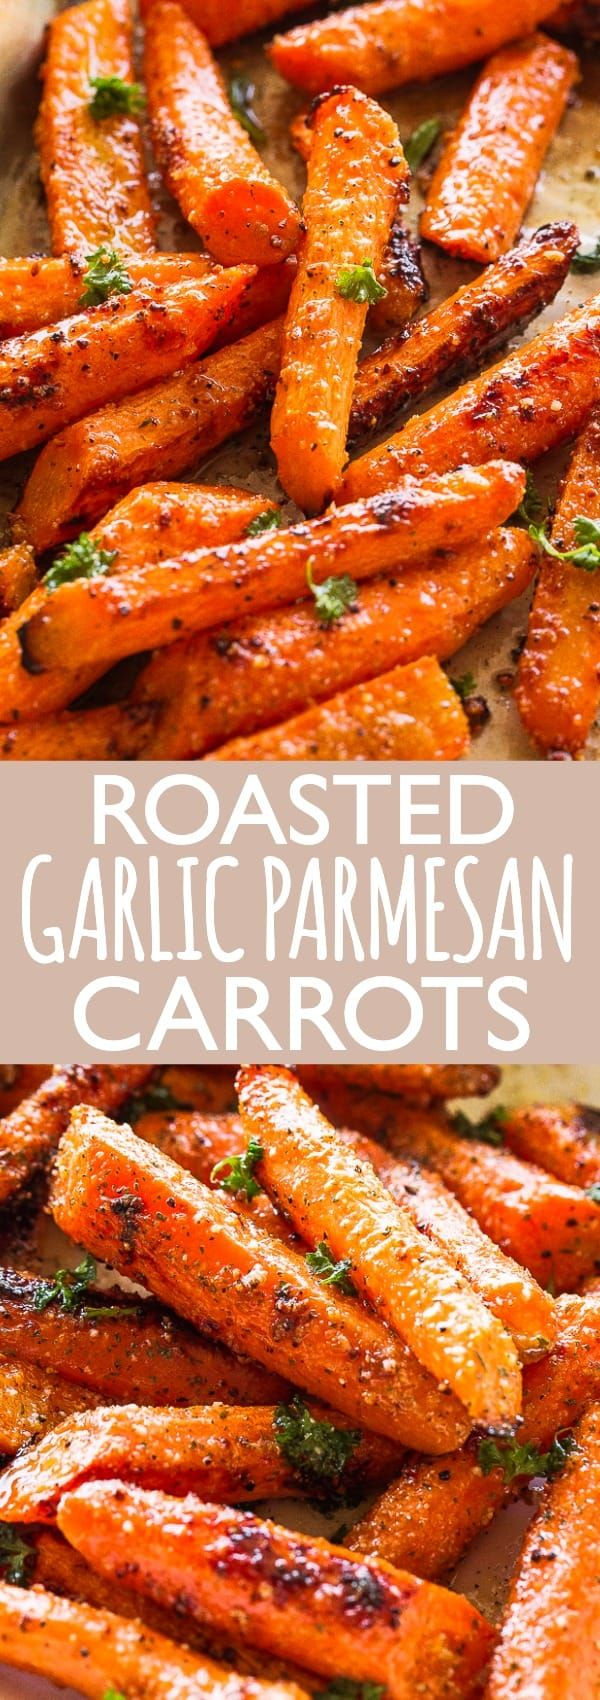 Roasted Garlic Parmesan Carrots - An easy, family favorite roasted carrots recip...